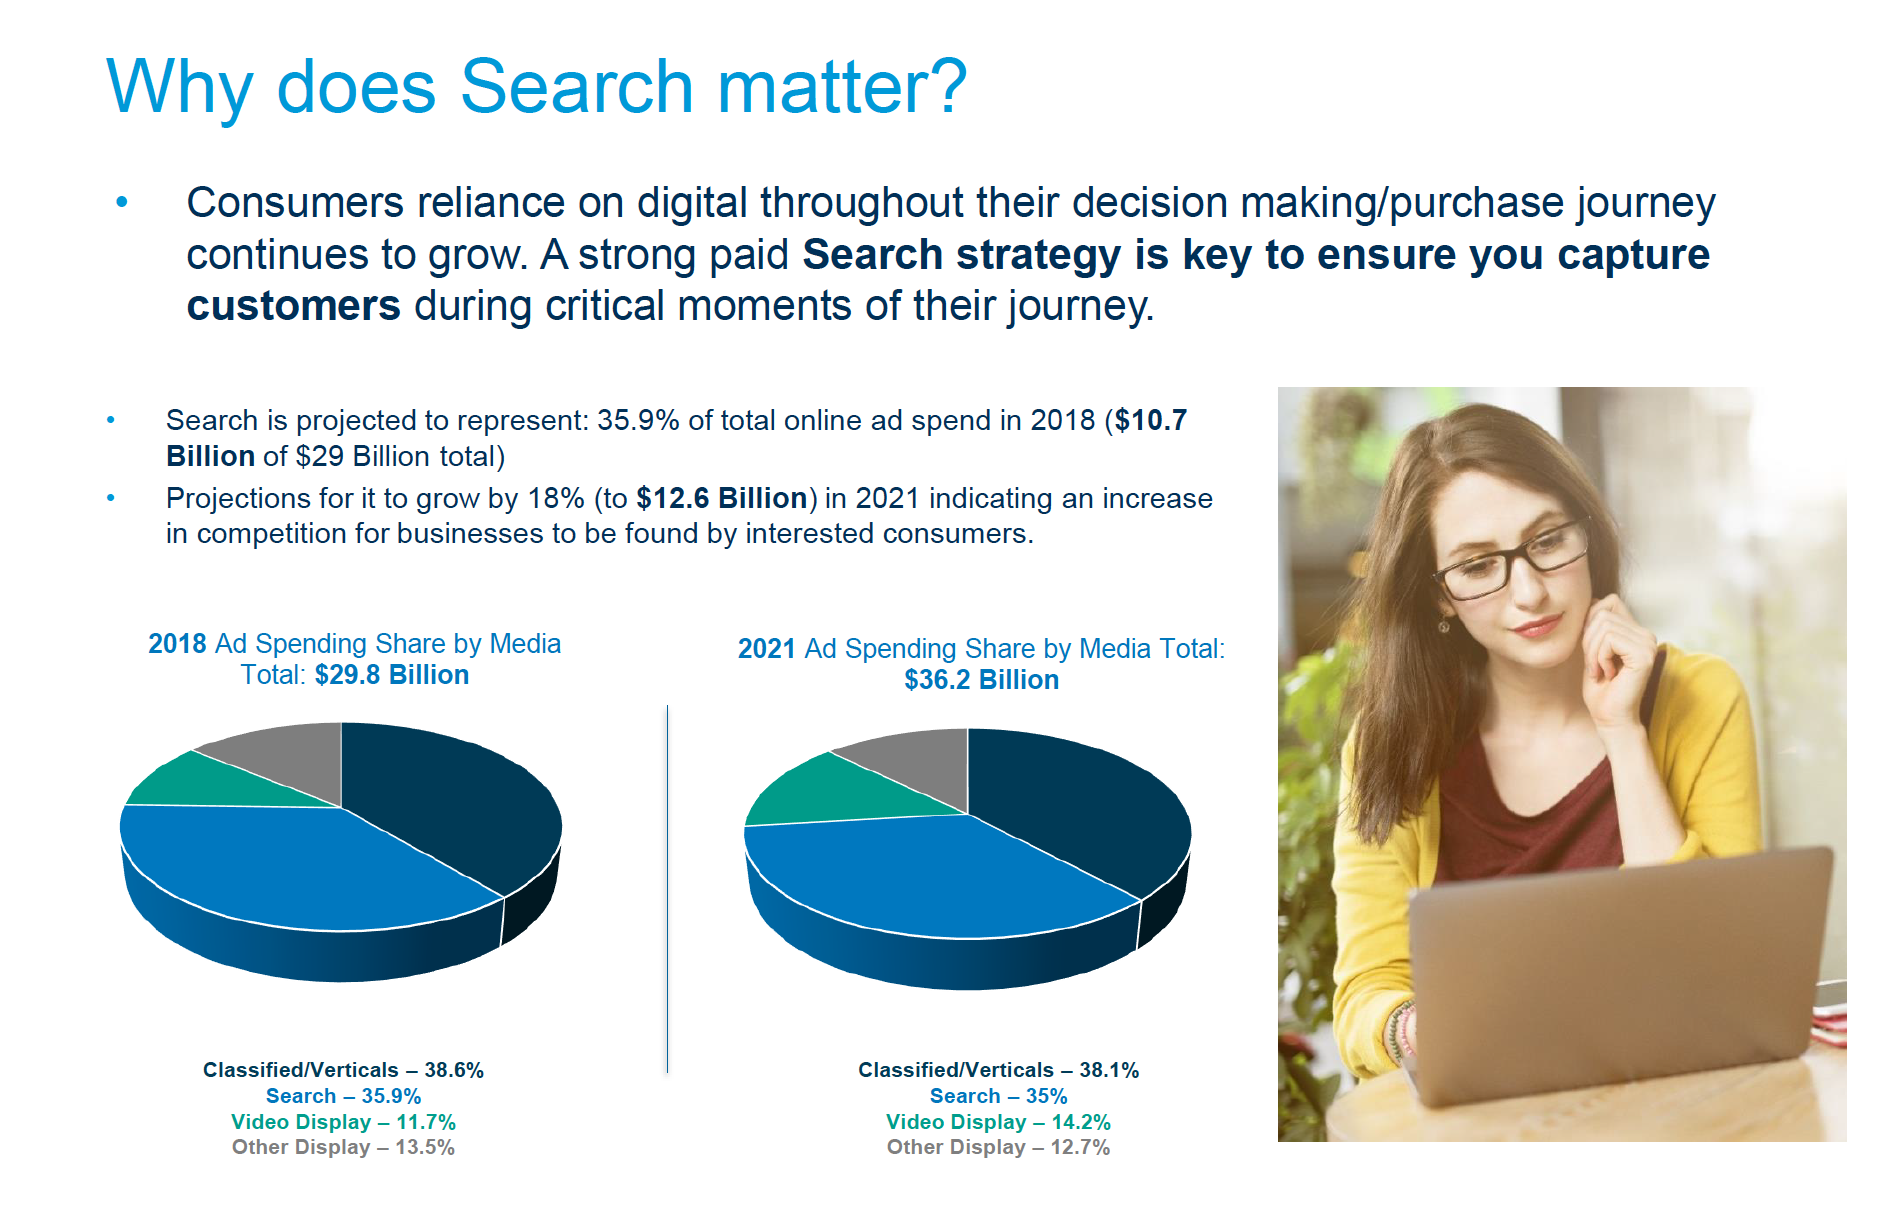 Search Matters Image